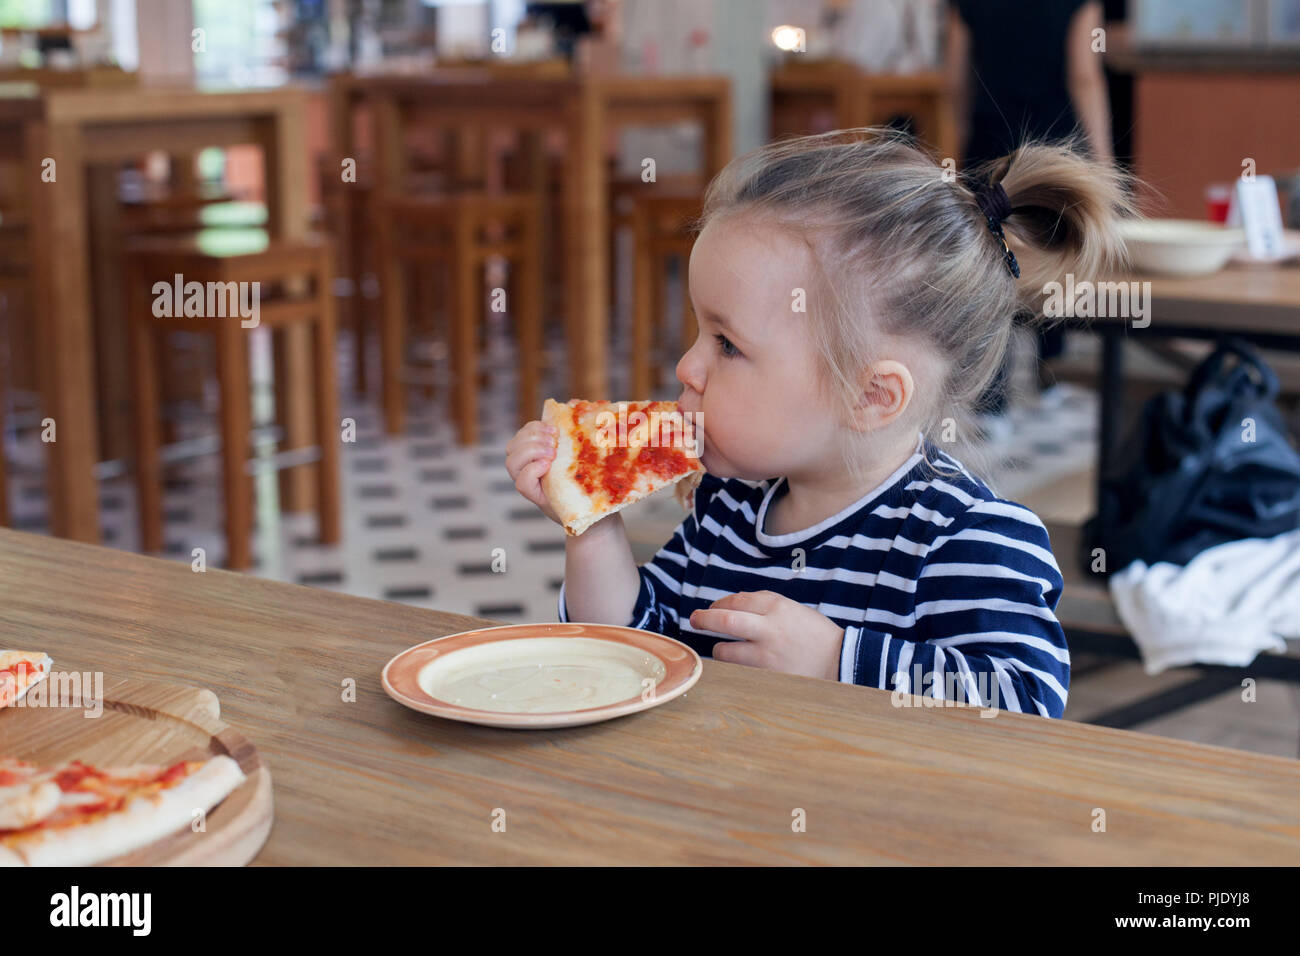 Cute little 2 years girl eating pizza in the restaurant - Stock Image